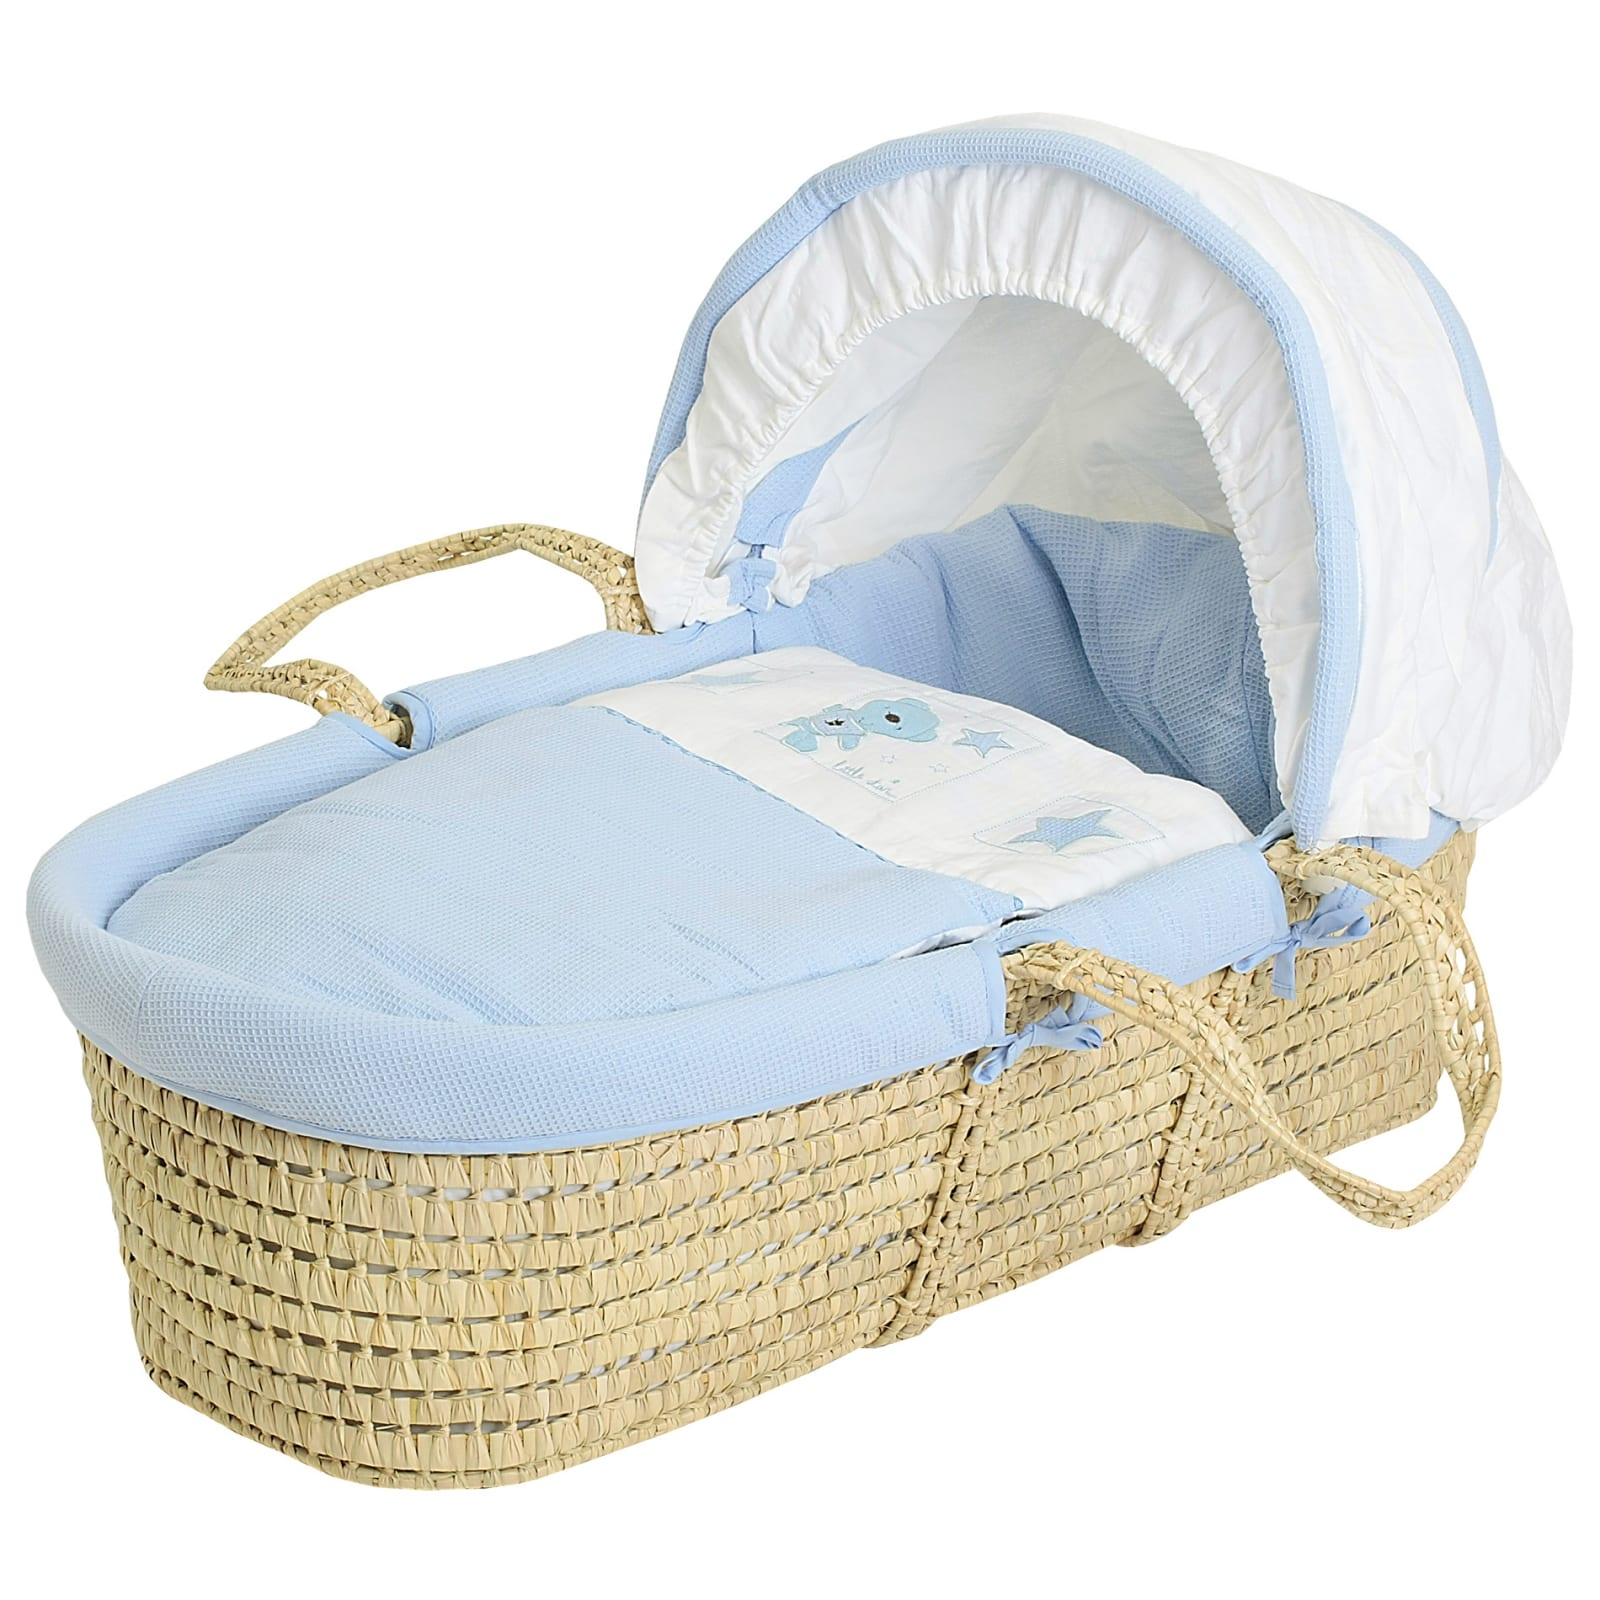 Star Ted Moses Basket – Palm – Blue product image